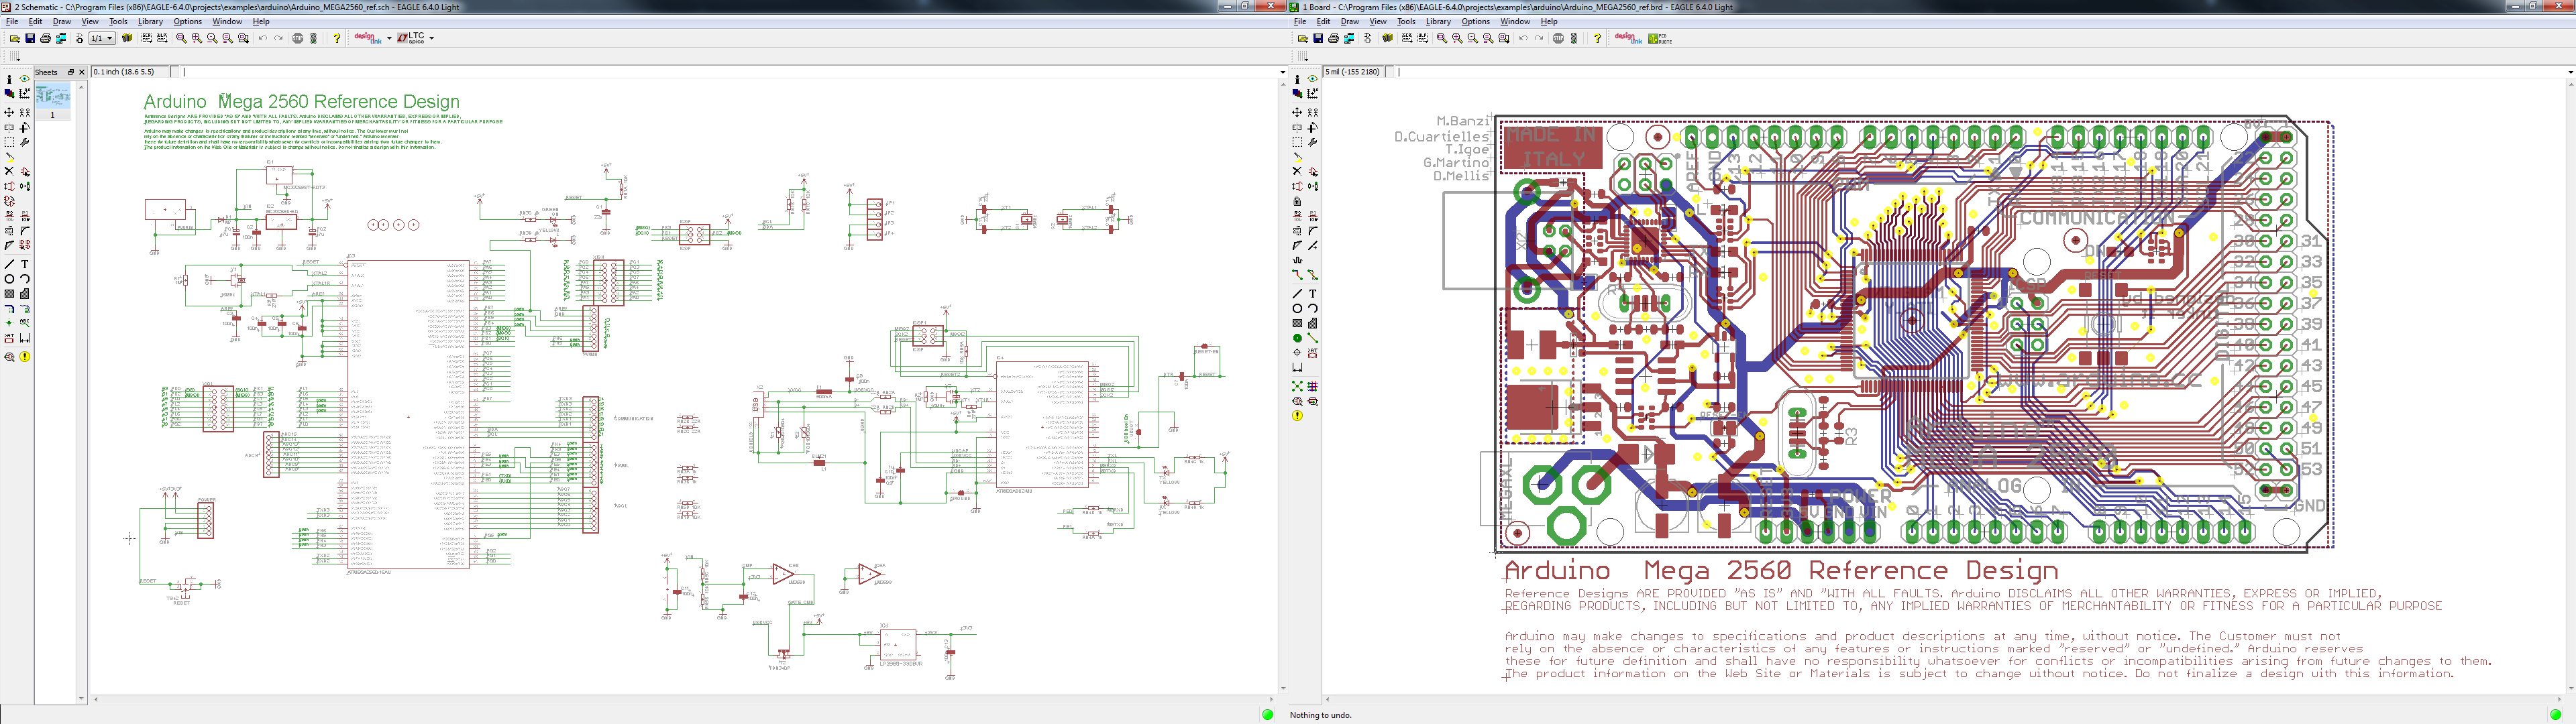 Electrical Wiring Diagram Software Open Source - Solidfonts